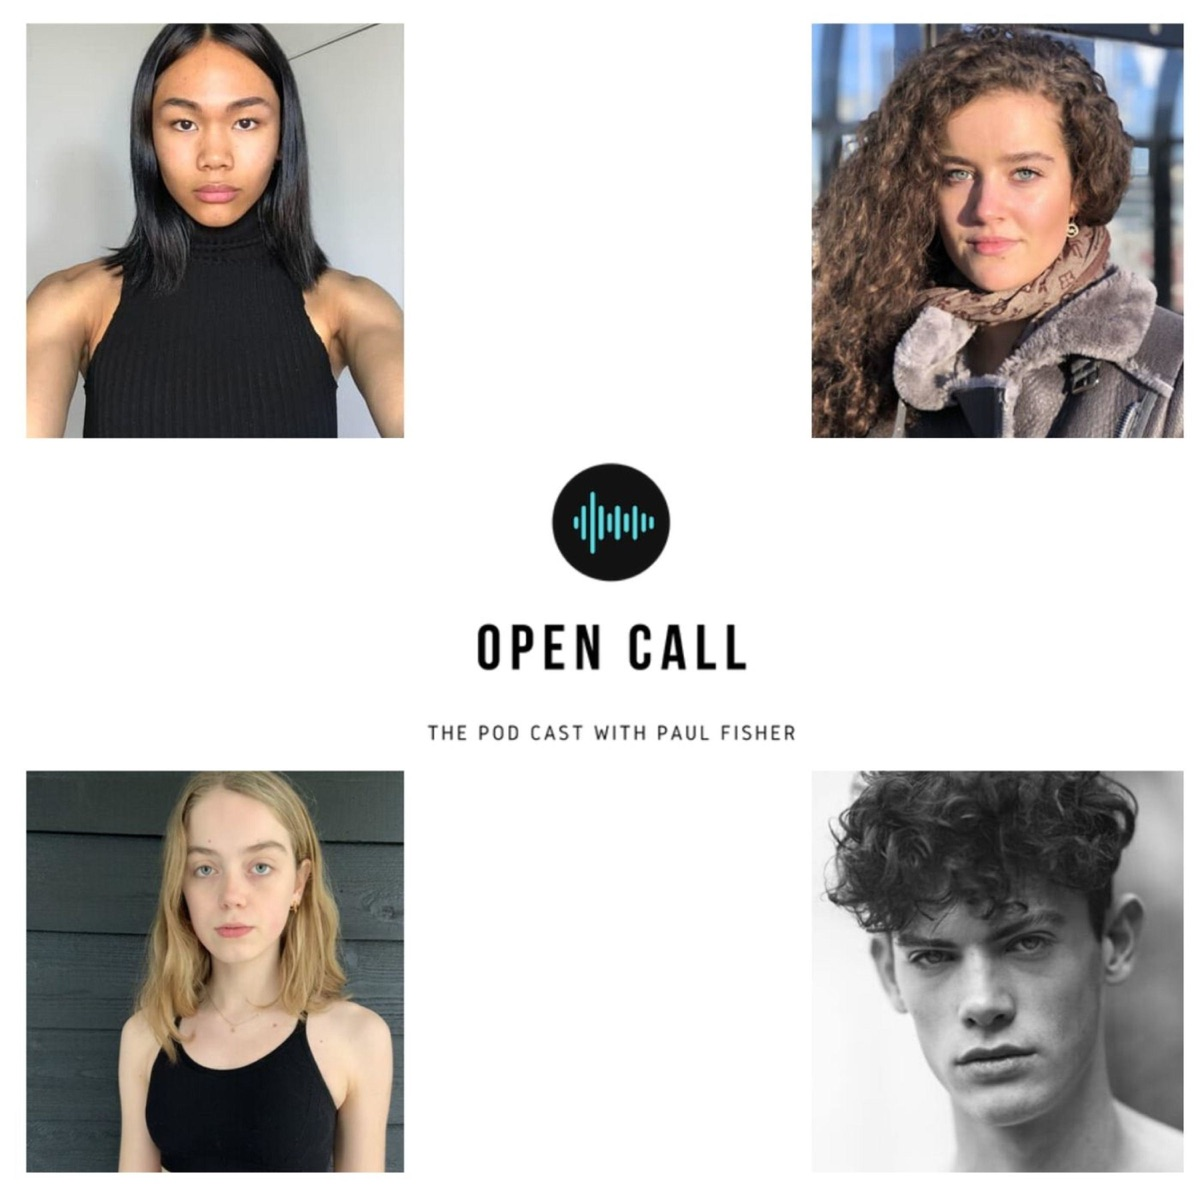 Open Call with Paul Fisher